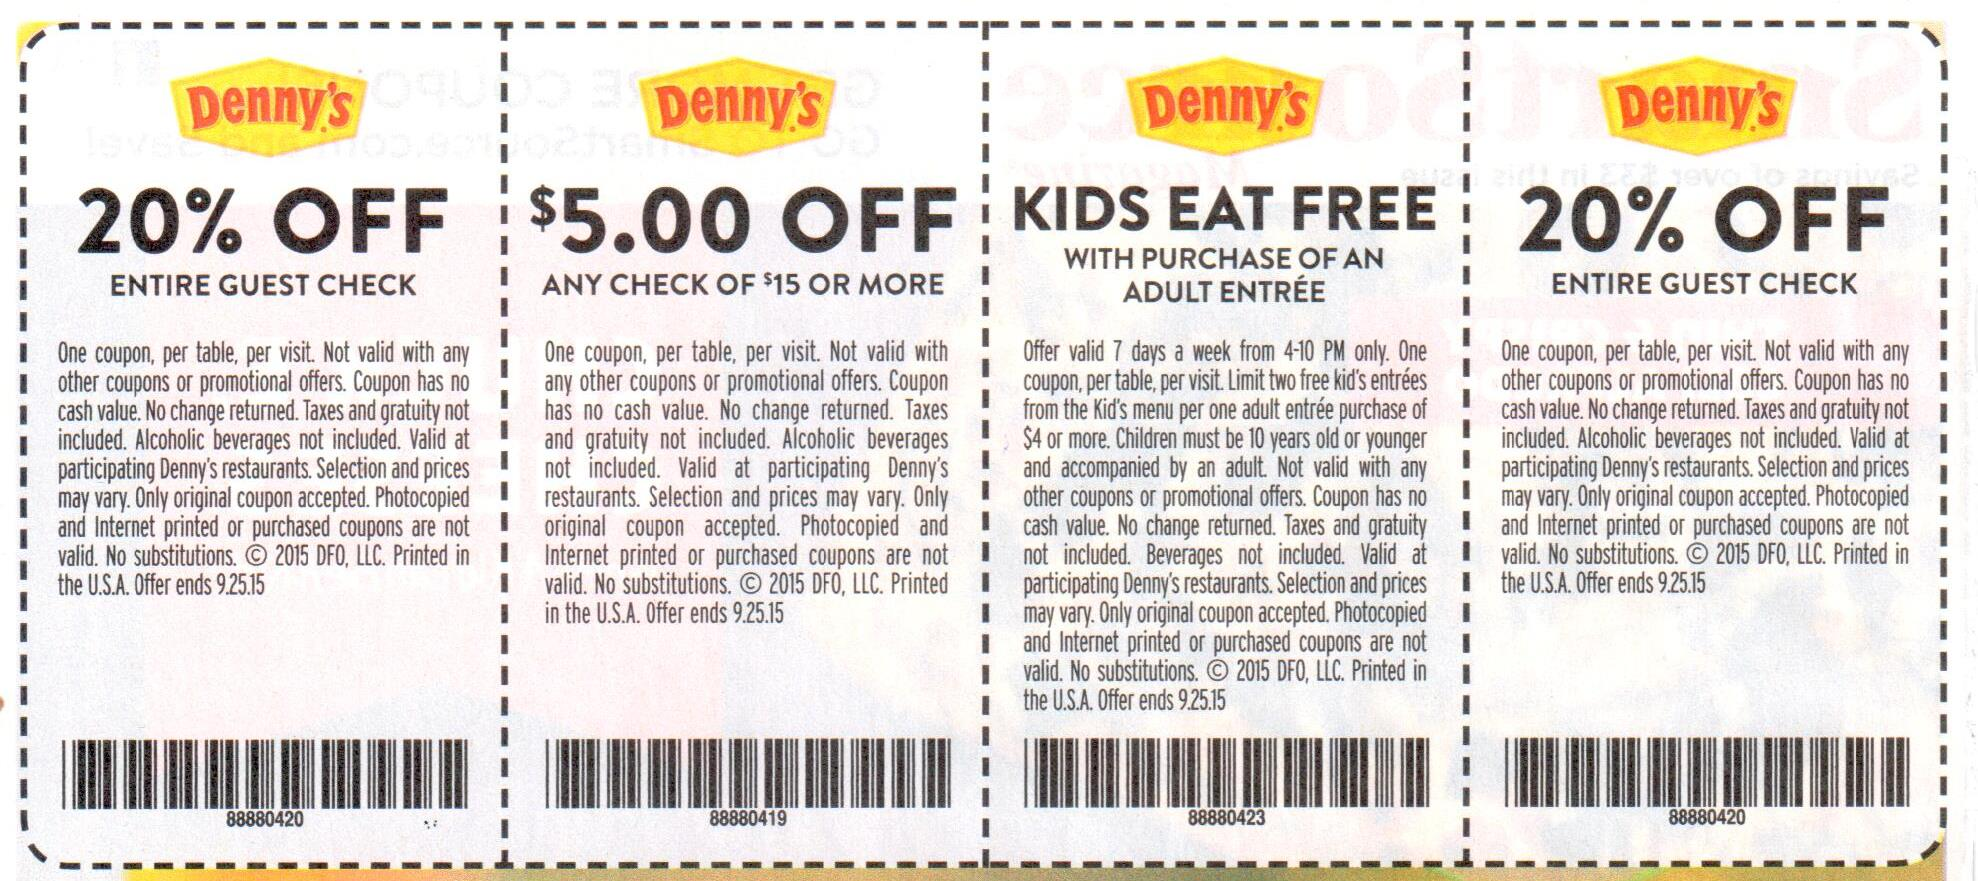 dennys deals march 2019